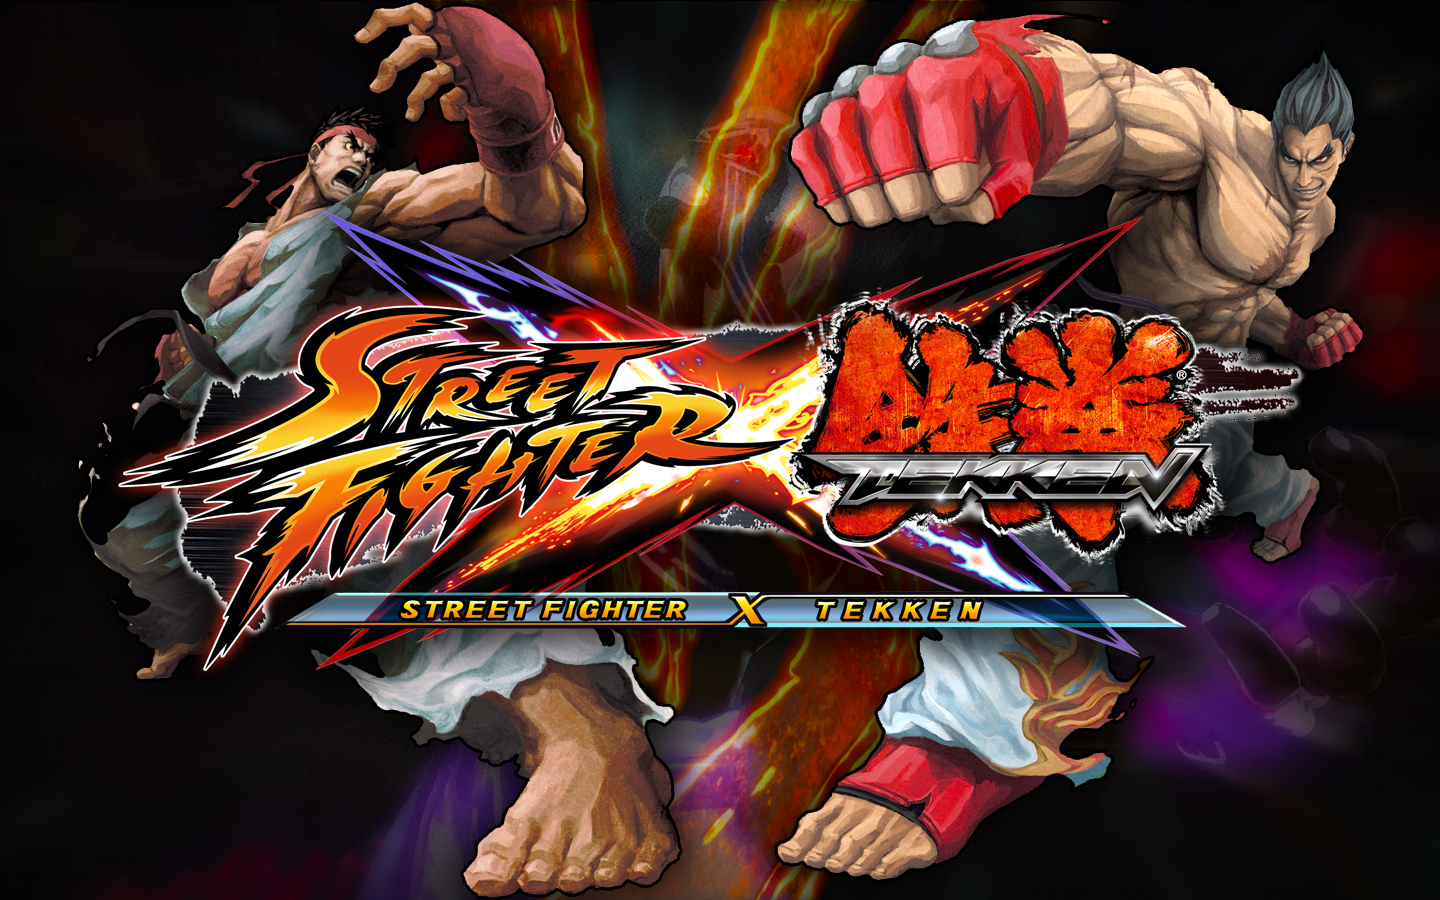 Street fighter vs tekken apk